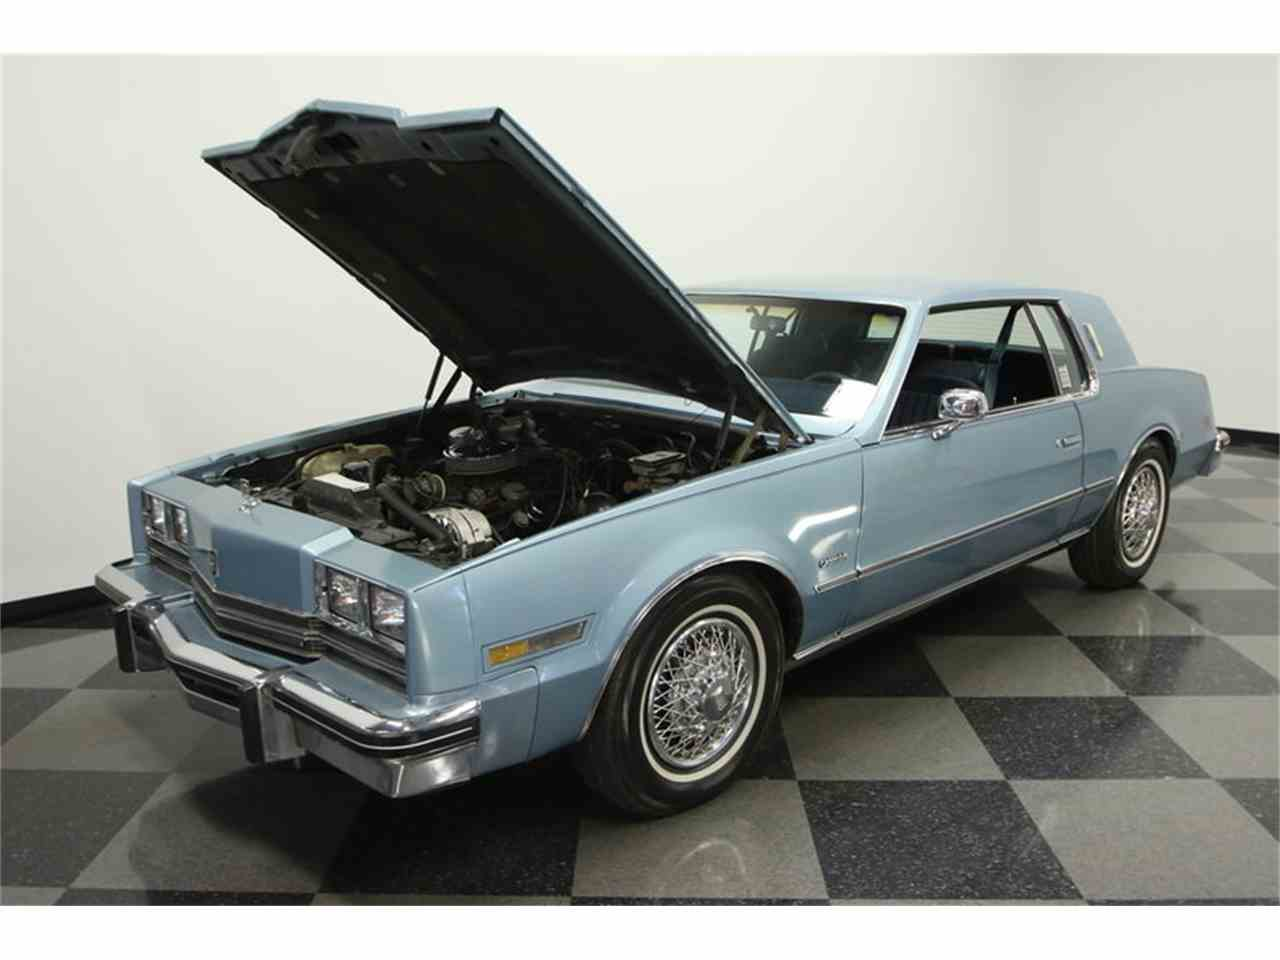 Large Picture of '85 Toronado located in Lutz Florida - $9,995.00 Offered by Streetside Classics - Tampa - JPY6